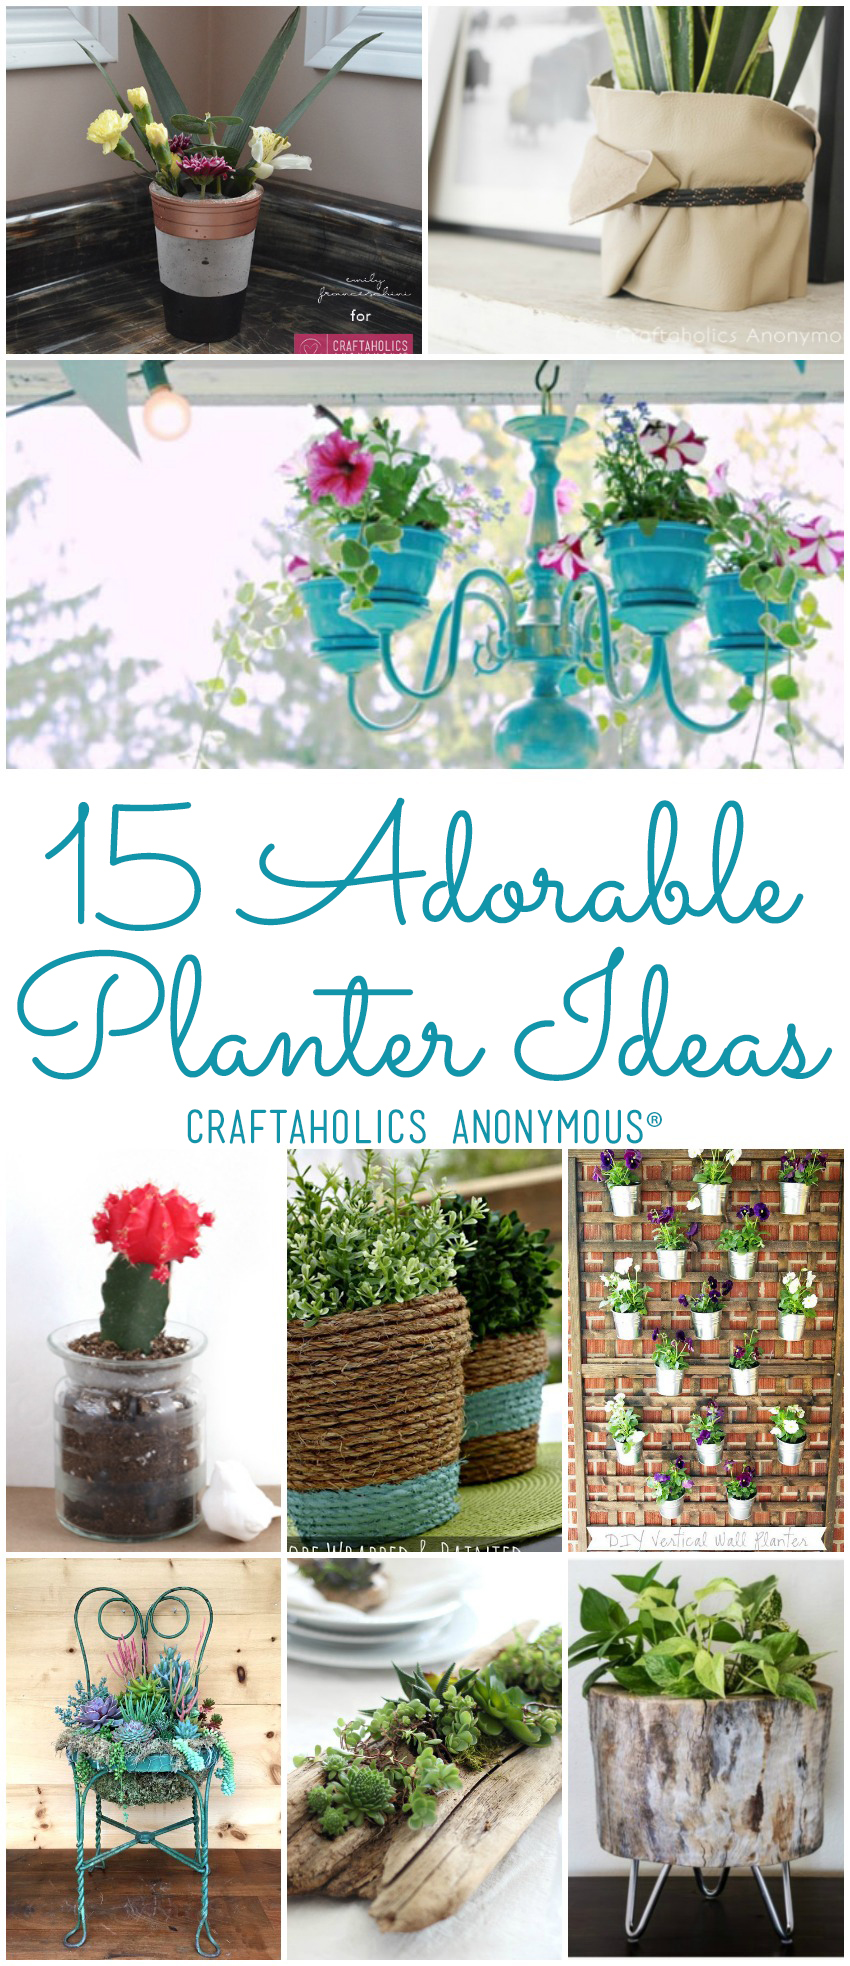 15 DIY Planter Ideas